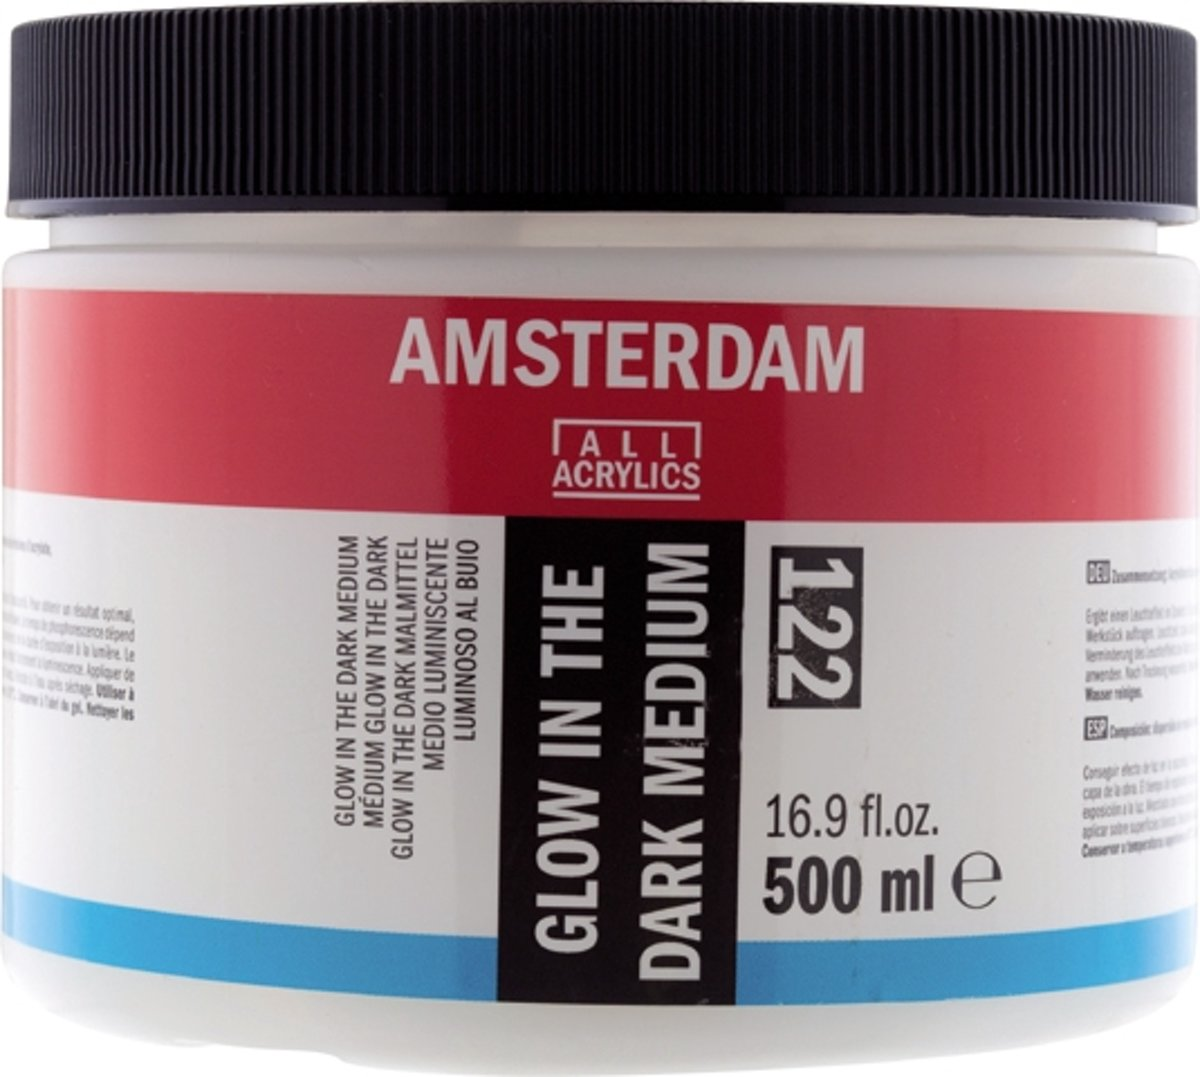 Amsterdam Acrylverf 500 Ml Amsterdam Schildermedium Flacon 500 Ml Glow In The Dark